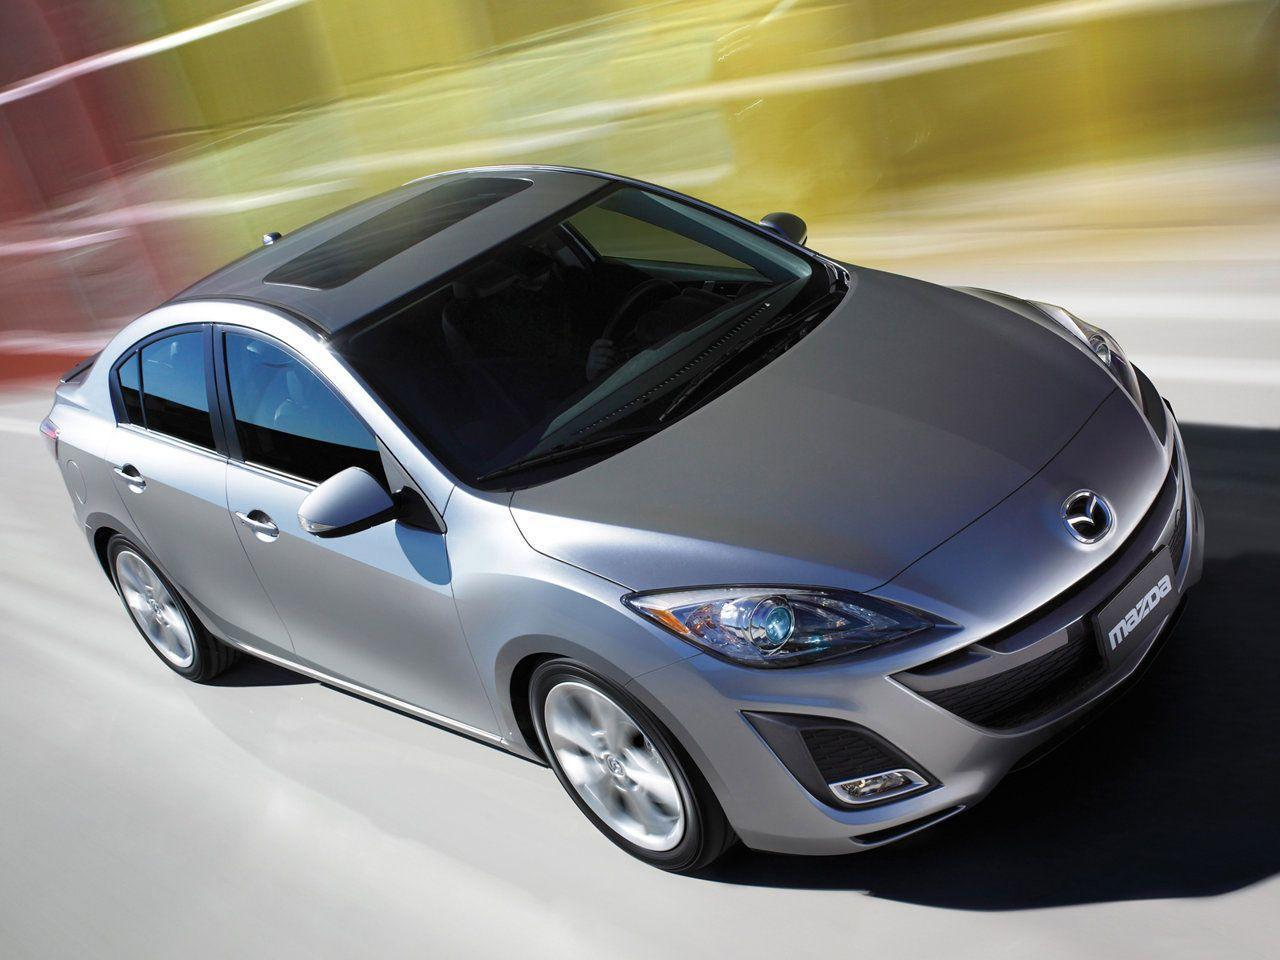 Vehicles For > Mazda 3 Wallpapers